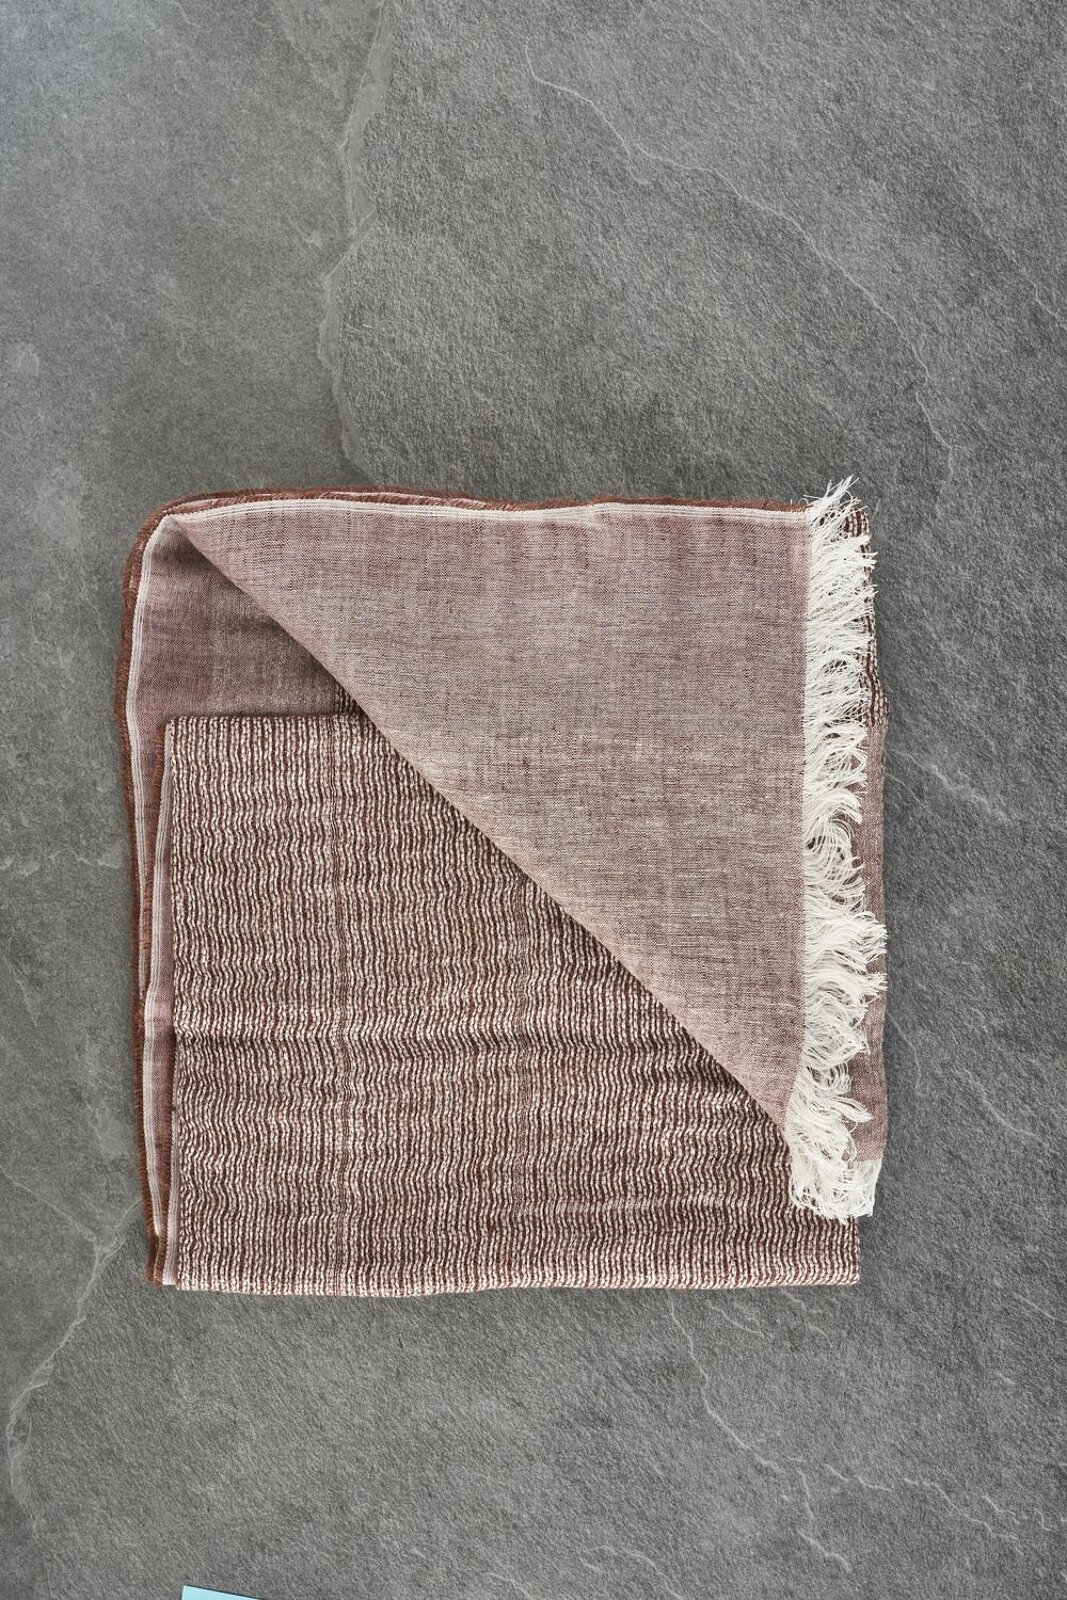 Lightweight stole in linen and cotton fabric with fringes on the bottom. Dimensions 70 X 200 Cm. - Peserico